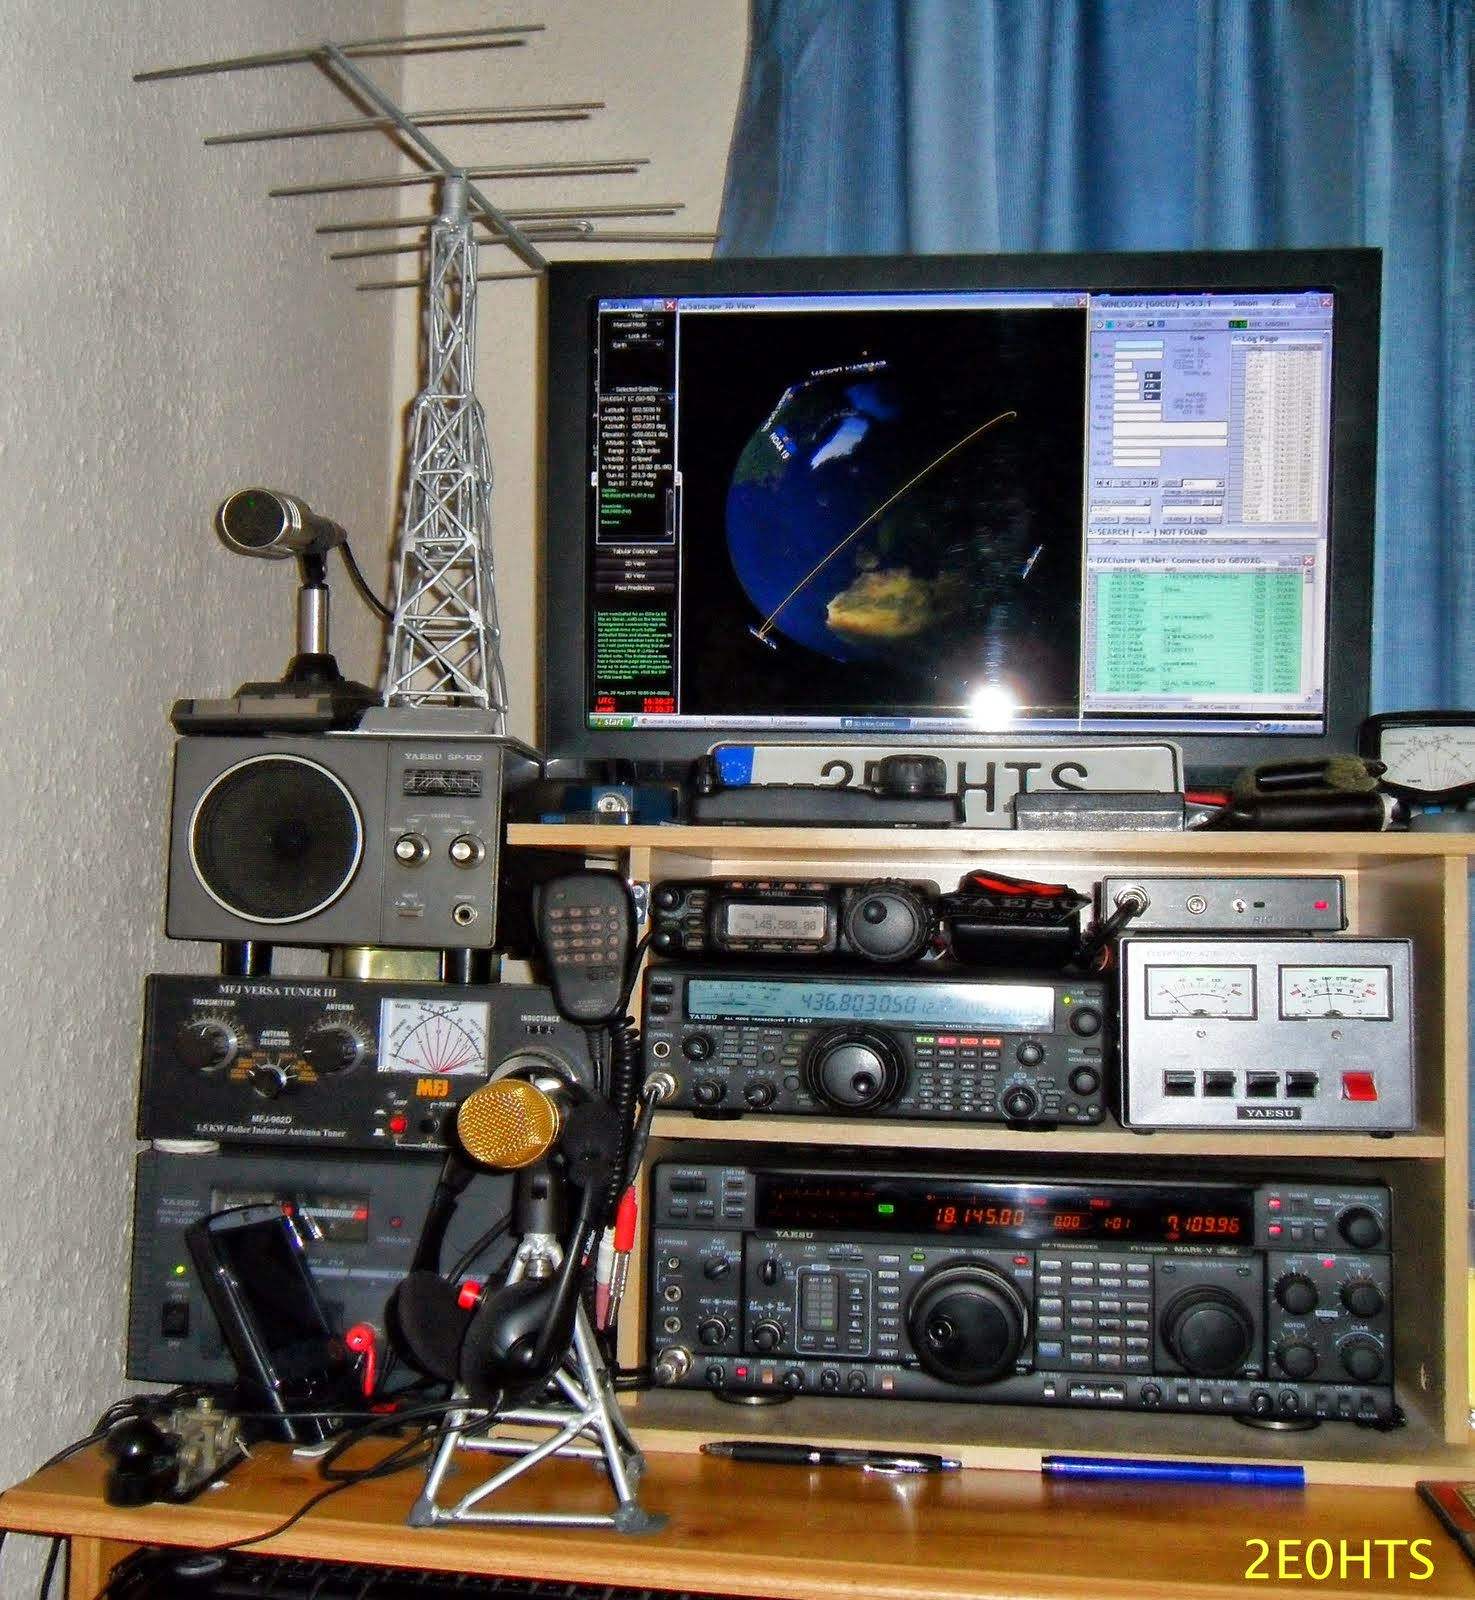 Shack%2BView%2BOf%2B2E0HTS%2BAmateur%2BRadio%2BStations Equipment Used YAESU FT   857. YAESU FT   847. YAESU FT – 1000MP MARK – V